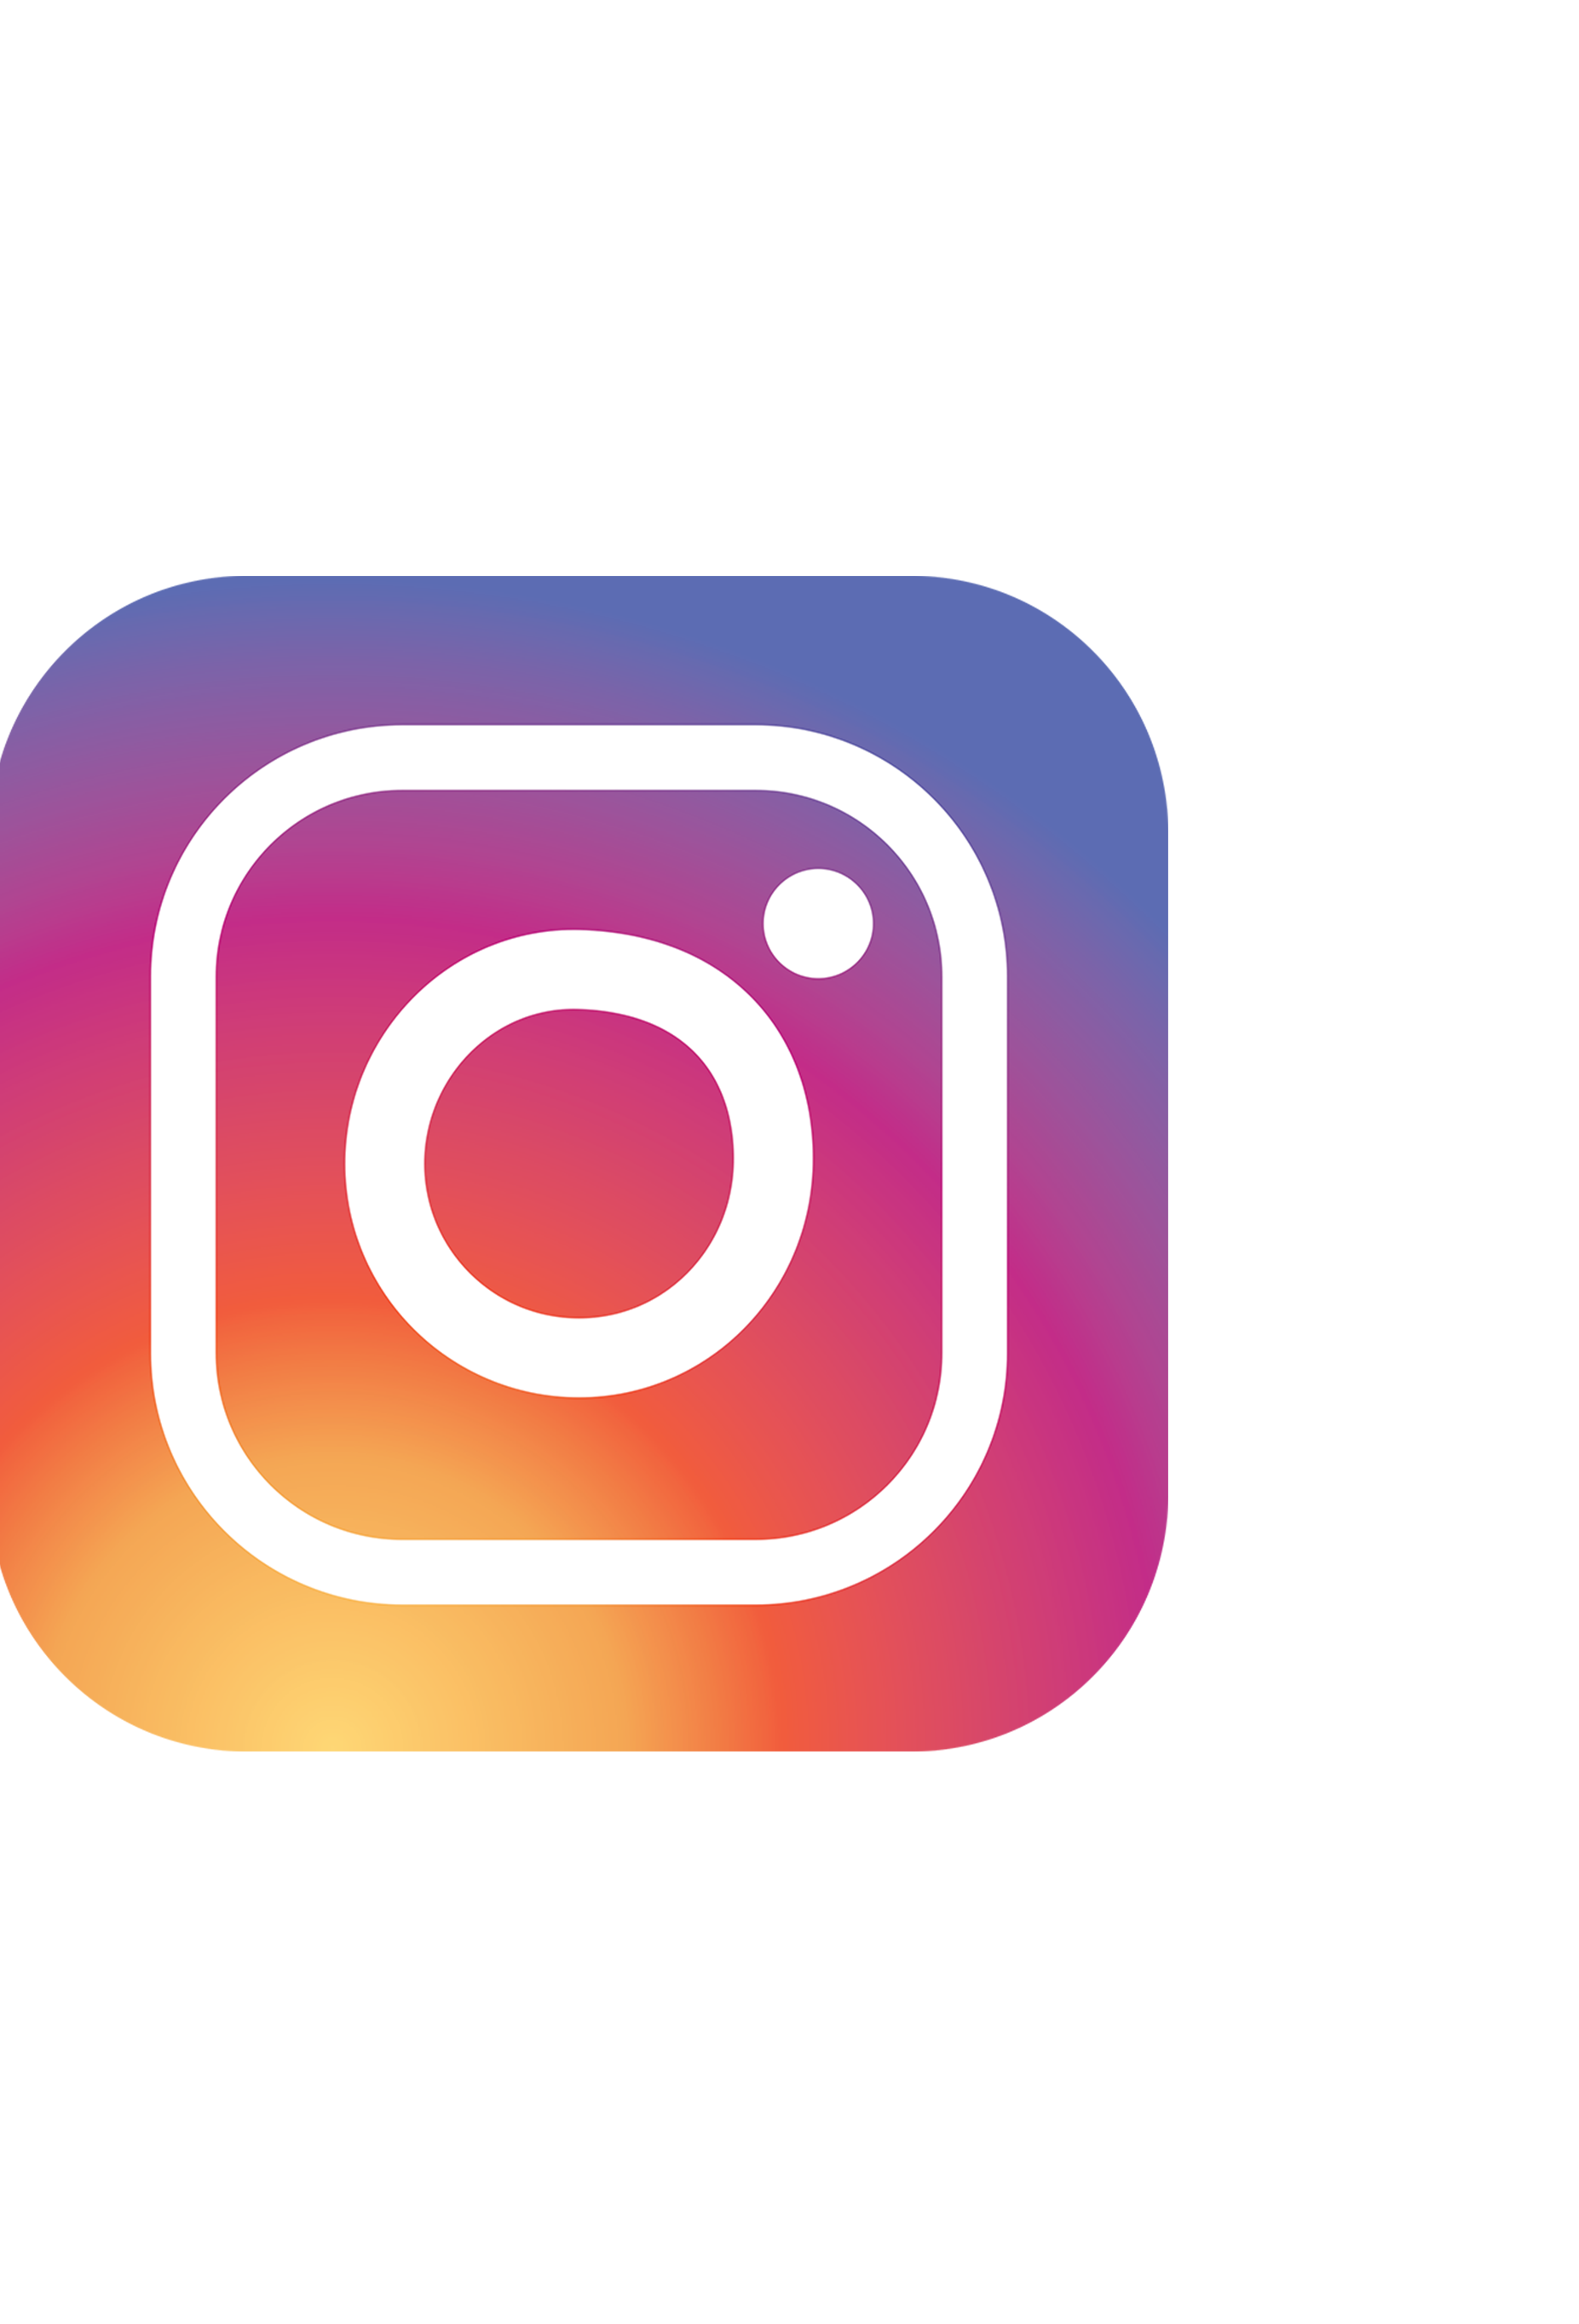 Instagram logo large 5